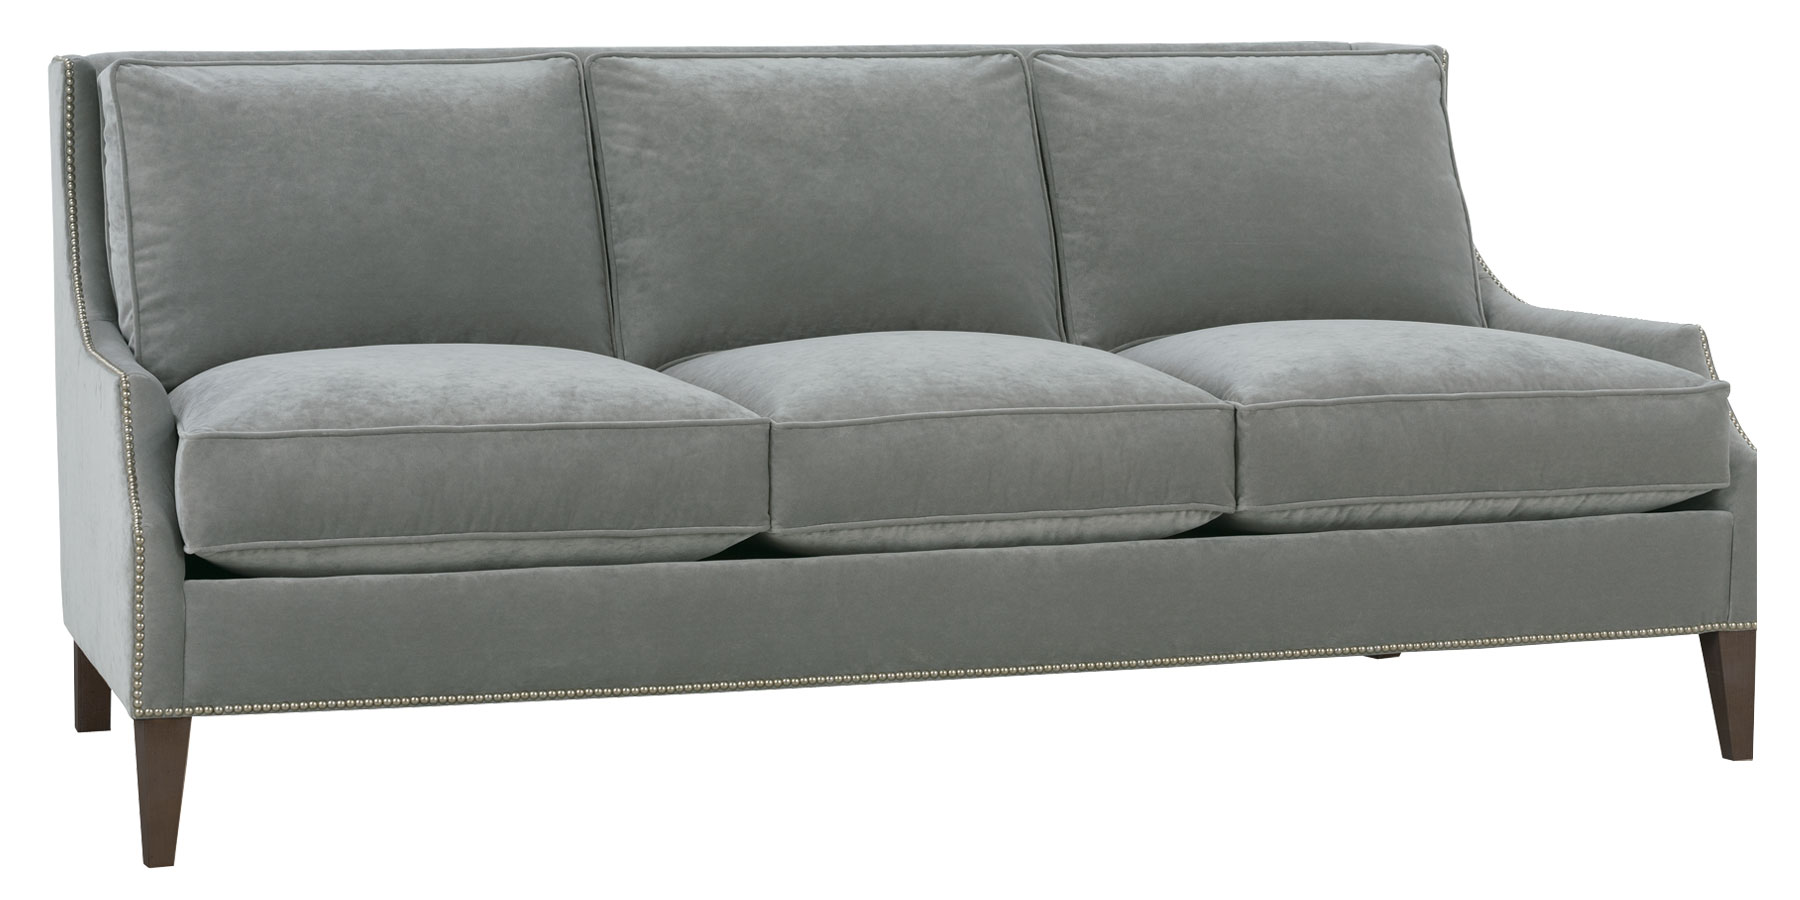 Astonishing Design Of The Grey Fabric Sofa Ideas As The Apartment Size Furniture Ideas